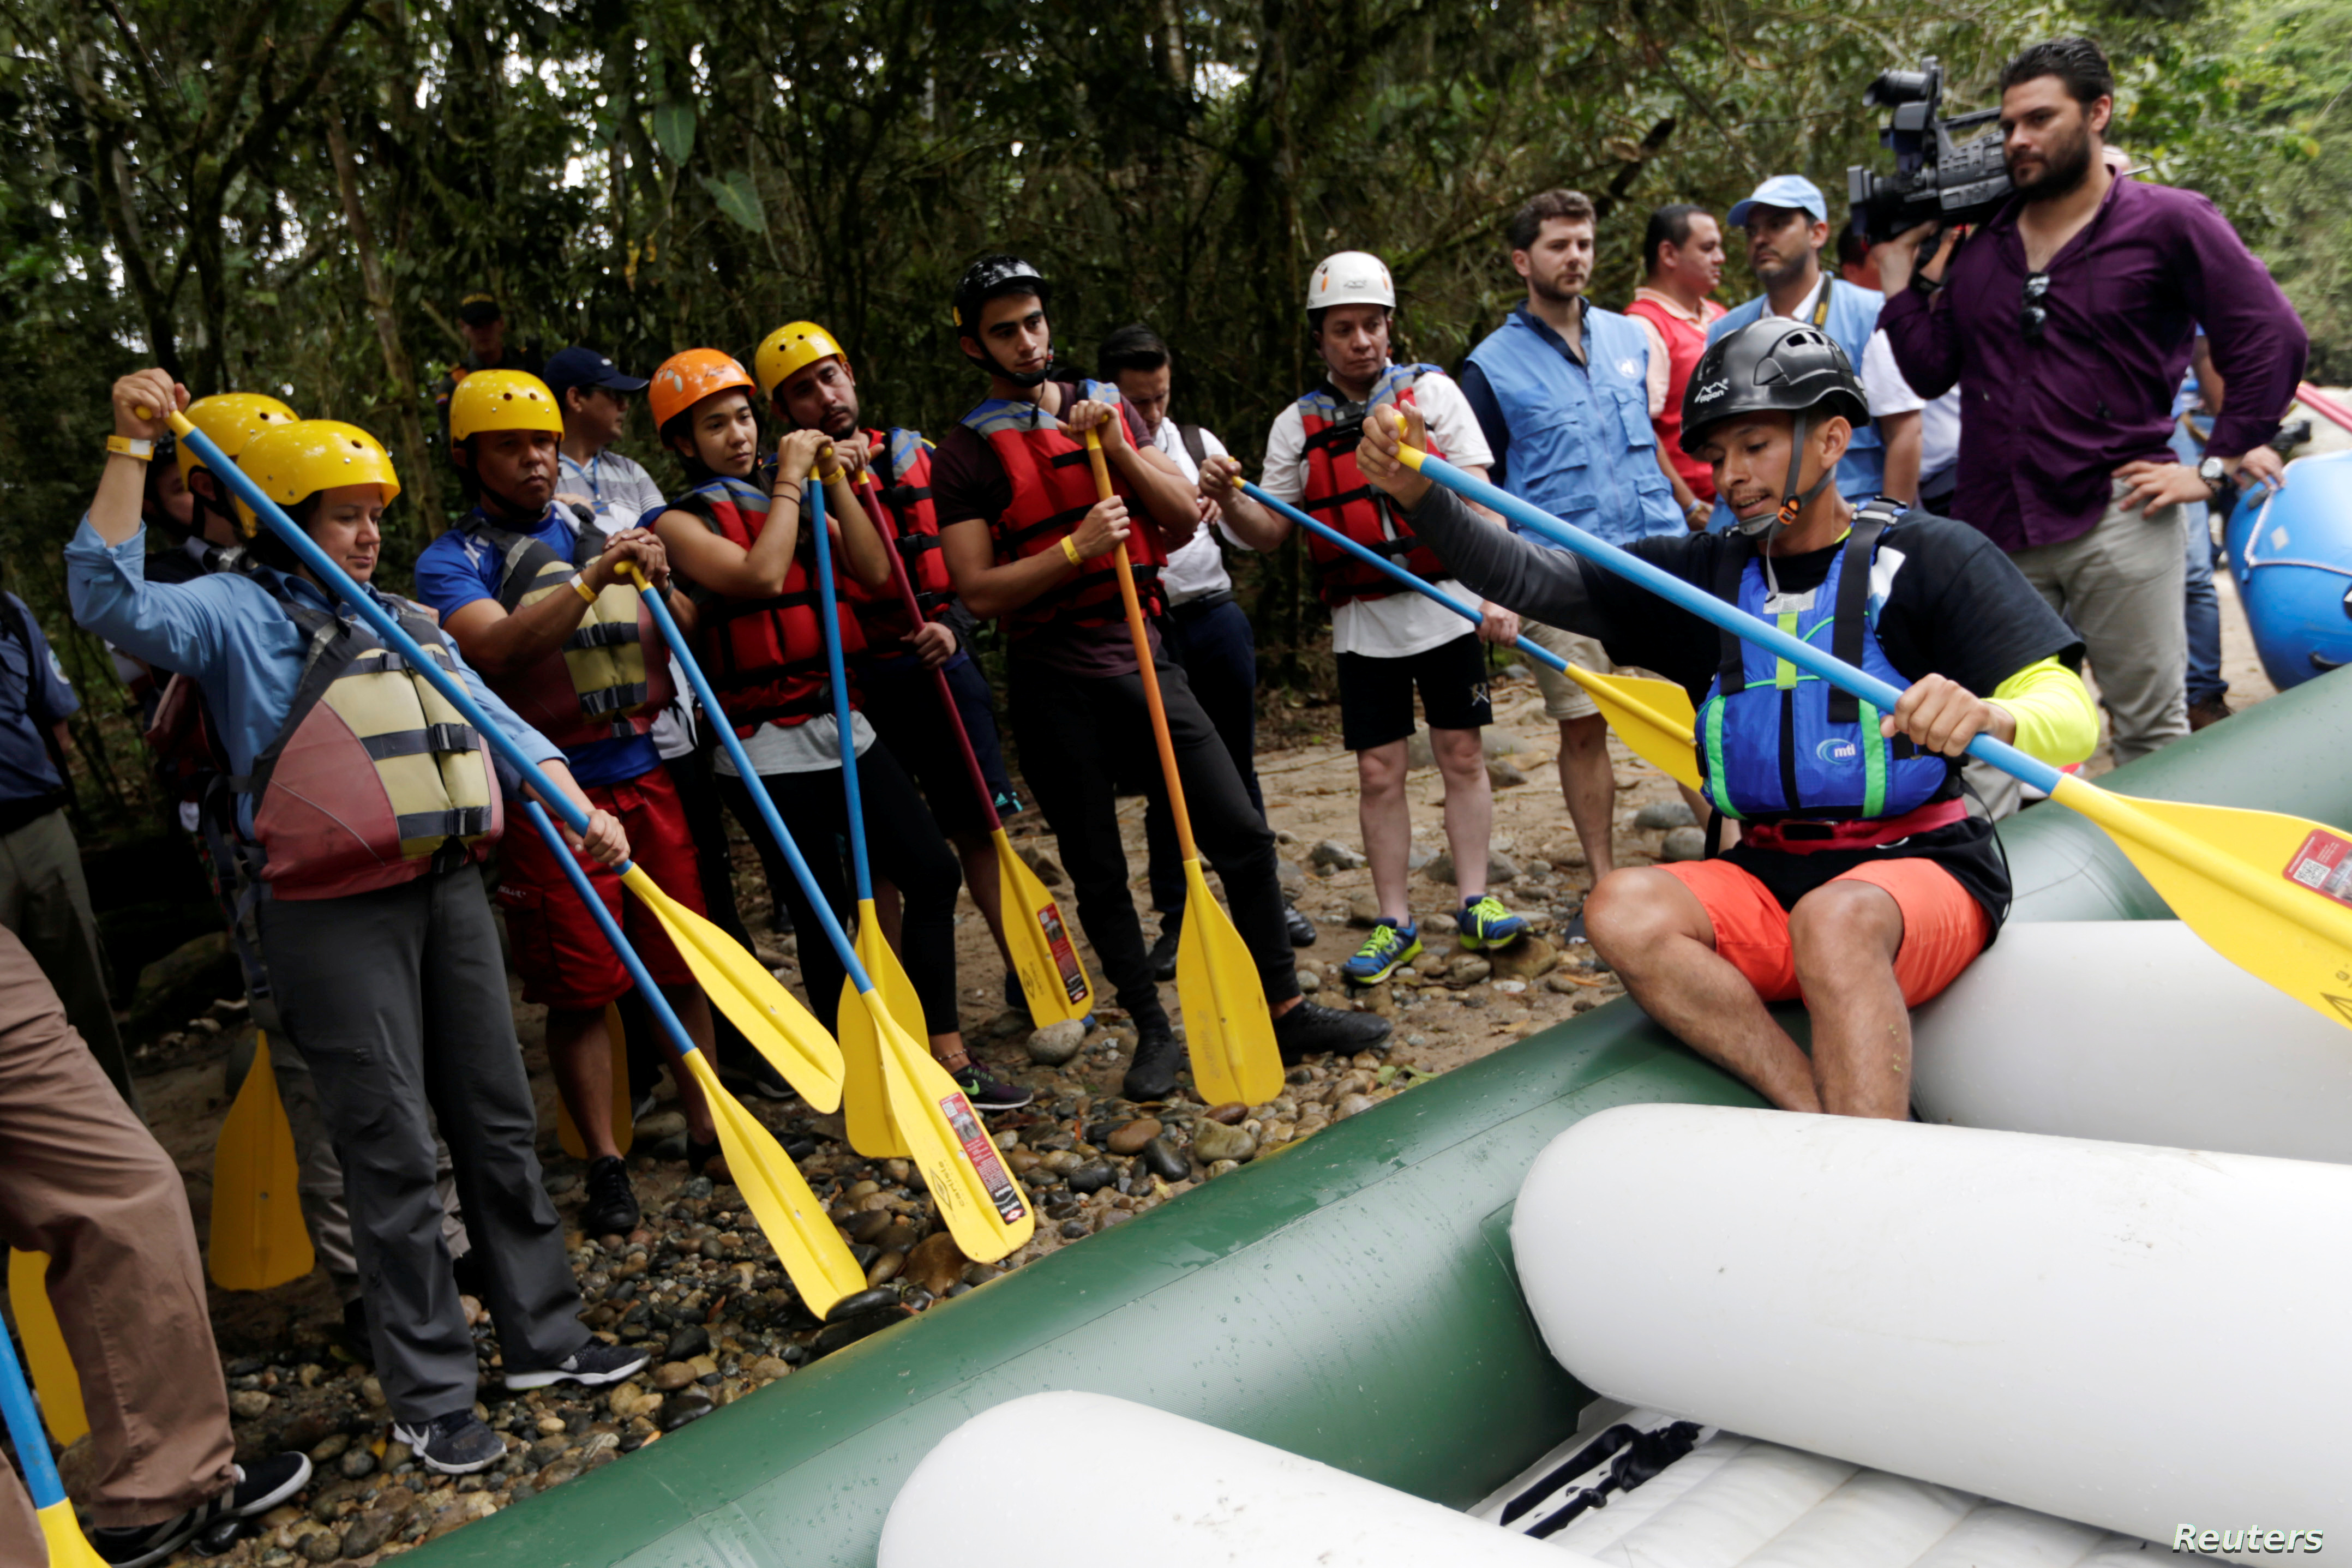 Duberney Moreno, former rebel of the FARC, rafting guide and instructor, speaks with a group of the press and government representatives before boarding an inflatable raft in Miravalle, Colombia, Nov. 9, 2018.